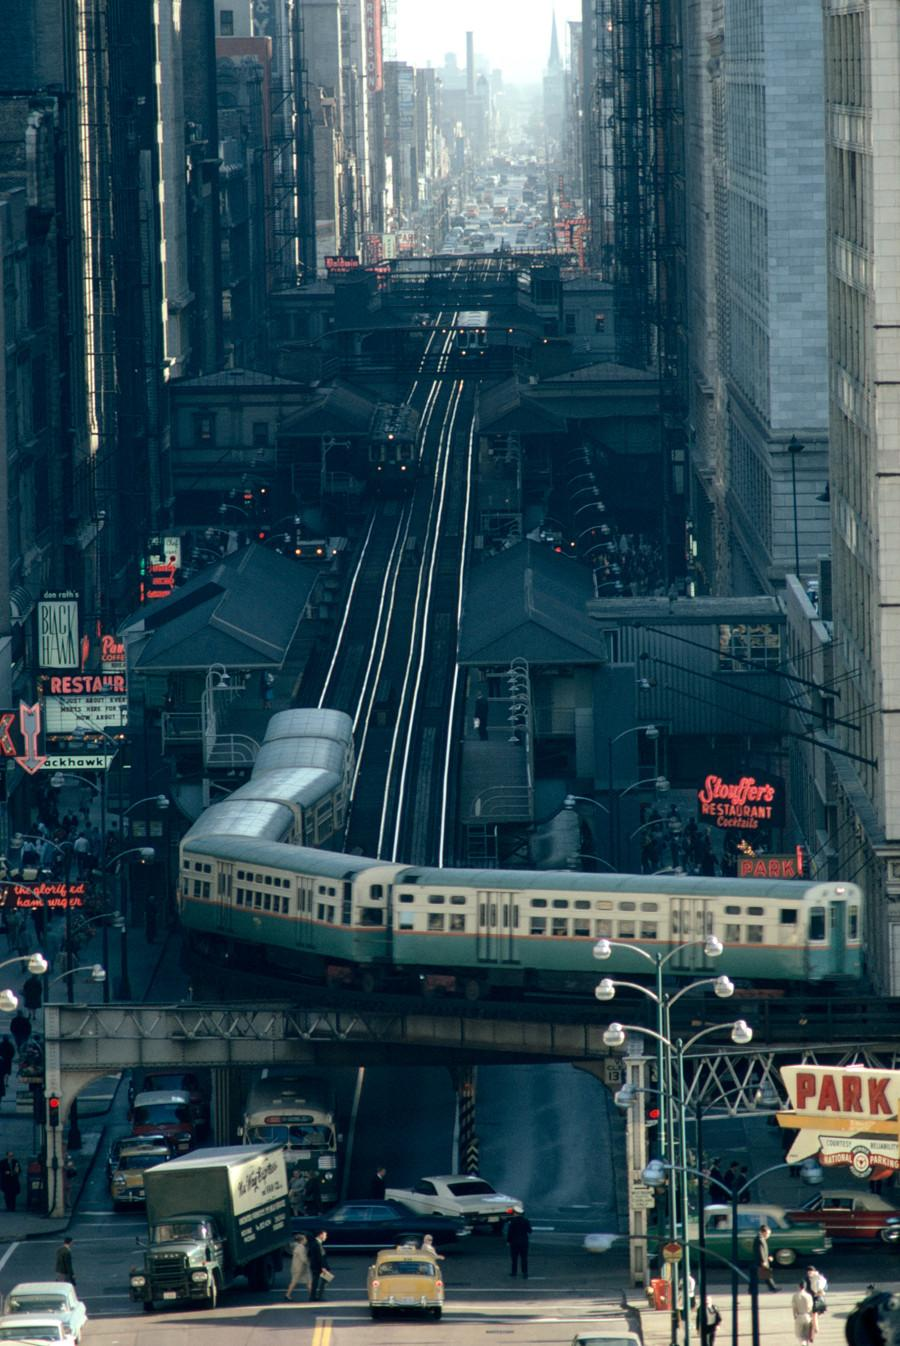 The Chicago L. 1969 http://t.co/4EgT0Hzhky